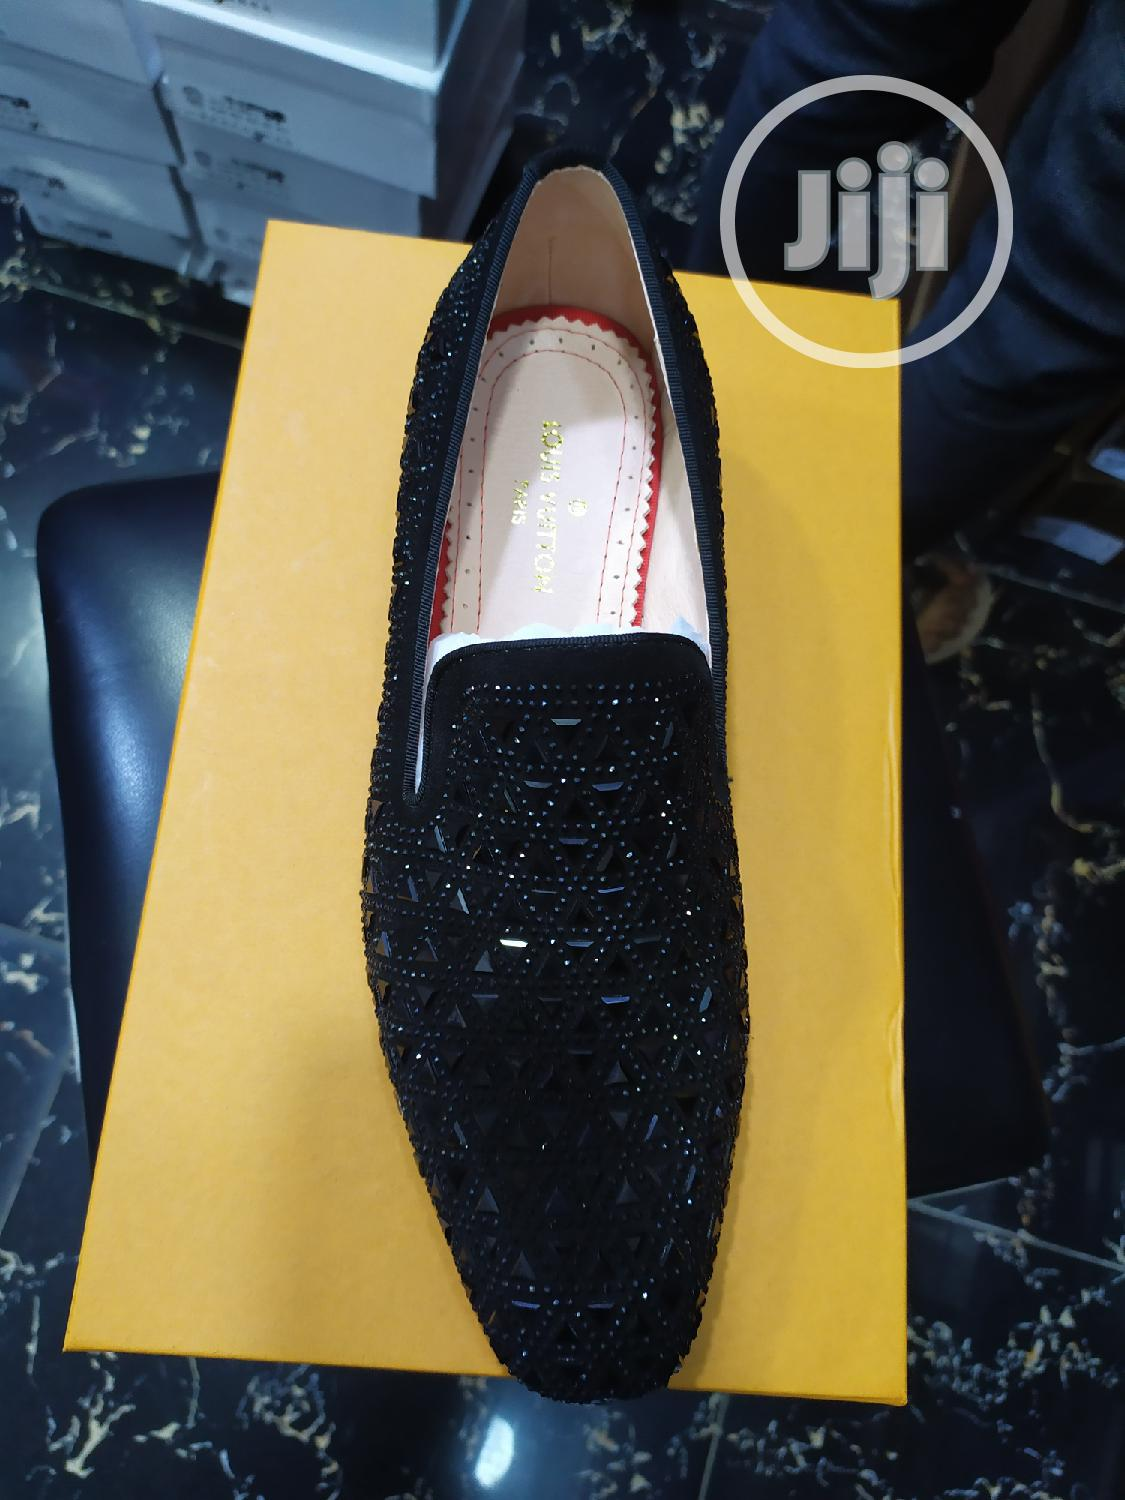 Gucci, Christian Louboutin, Versace Louis Vuitton Brand Collections